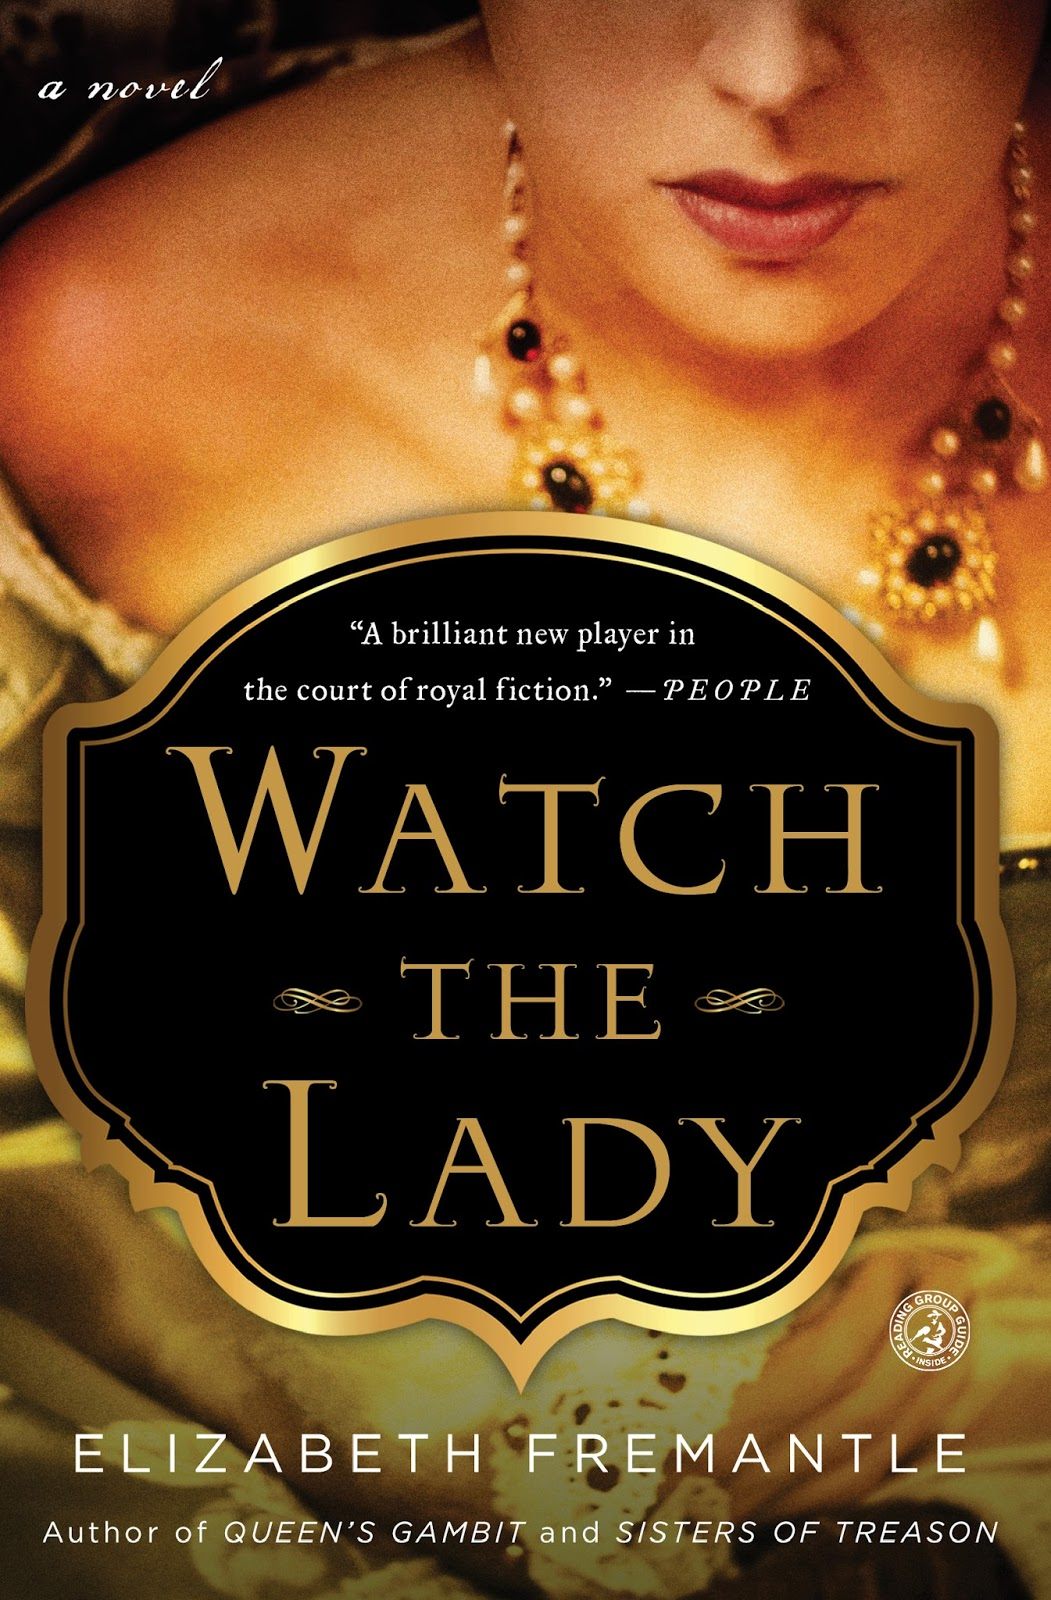 WATCH THE LADY is set in the Elizabethan Age. What is the allure of Tudor  England on modern readers?